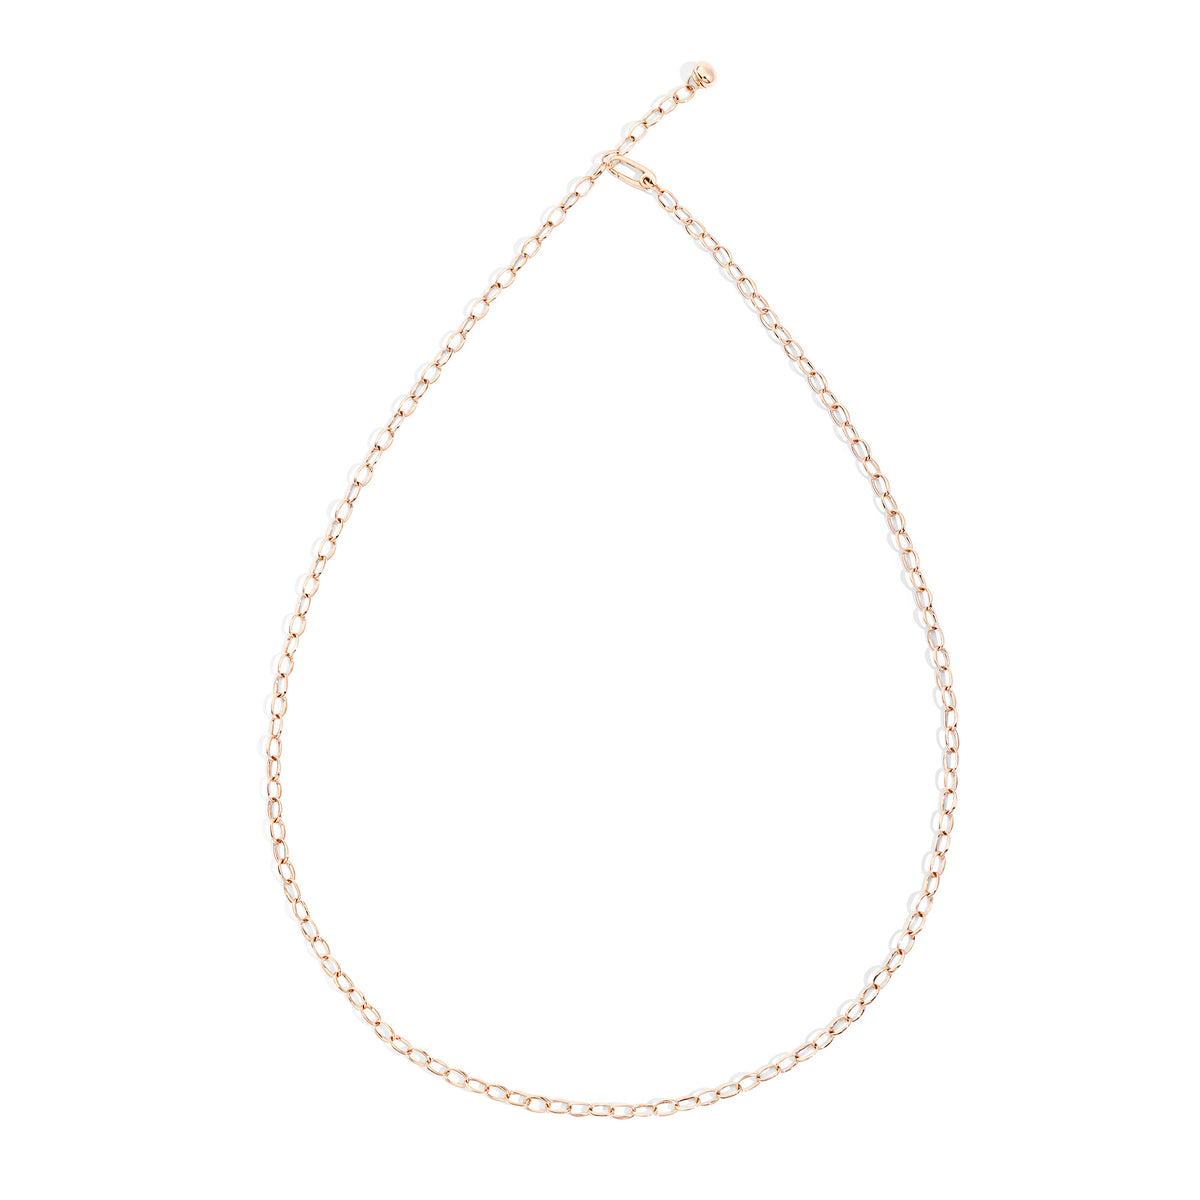 Capri Necklace in 18k Rose Gold - Orsini Jewellers NZ